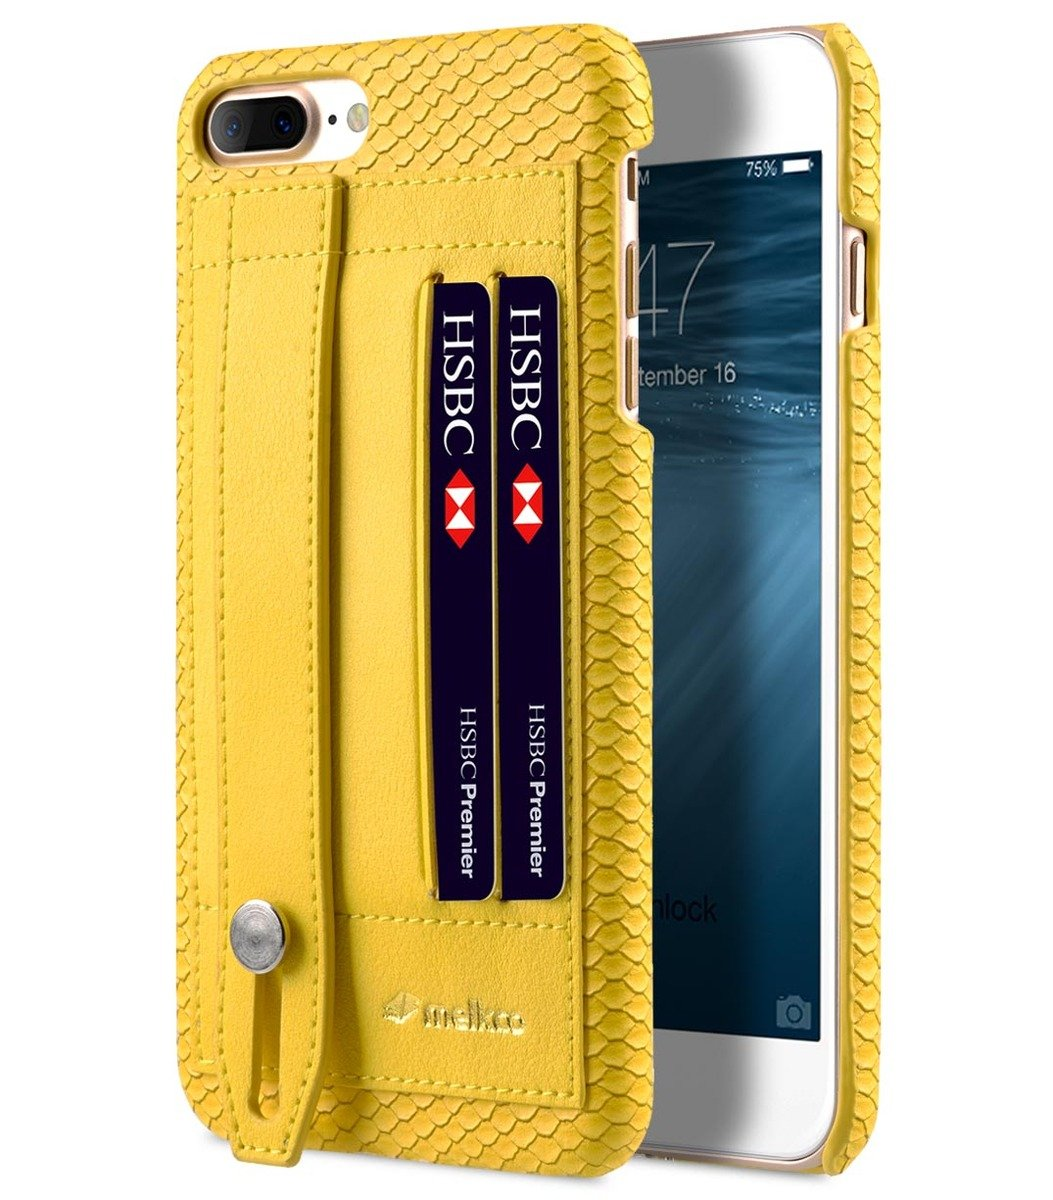 Apple iPhone 8 Plus / 7 Plus Python Skin Series Leather Case (Yellow)